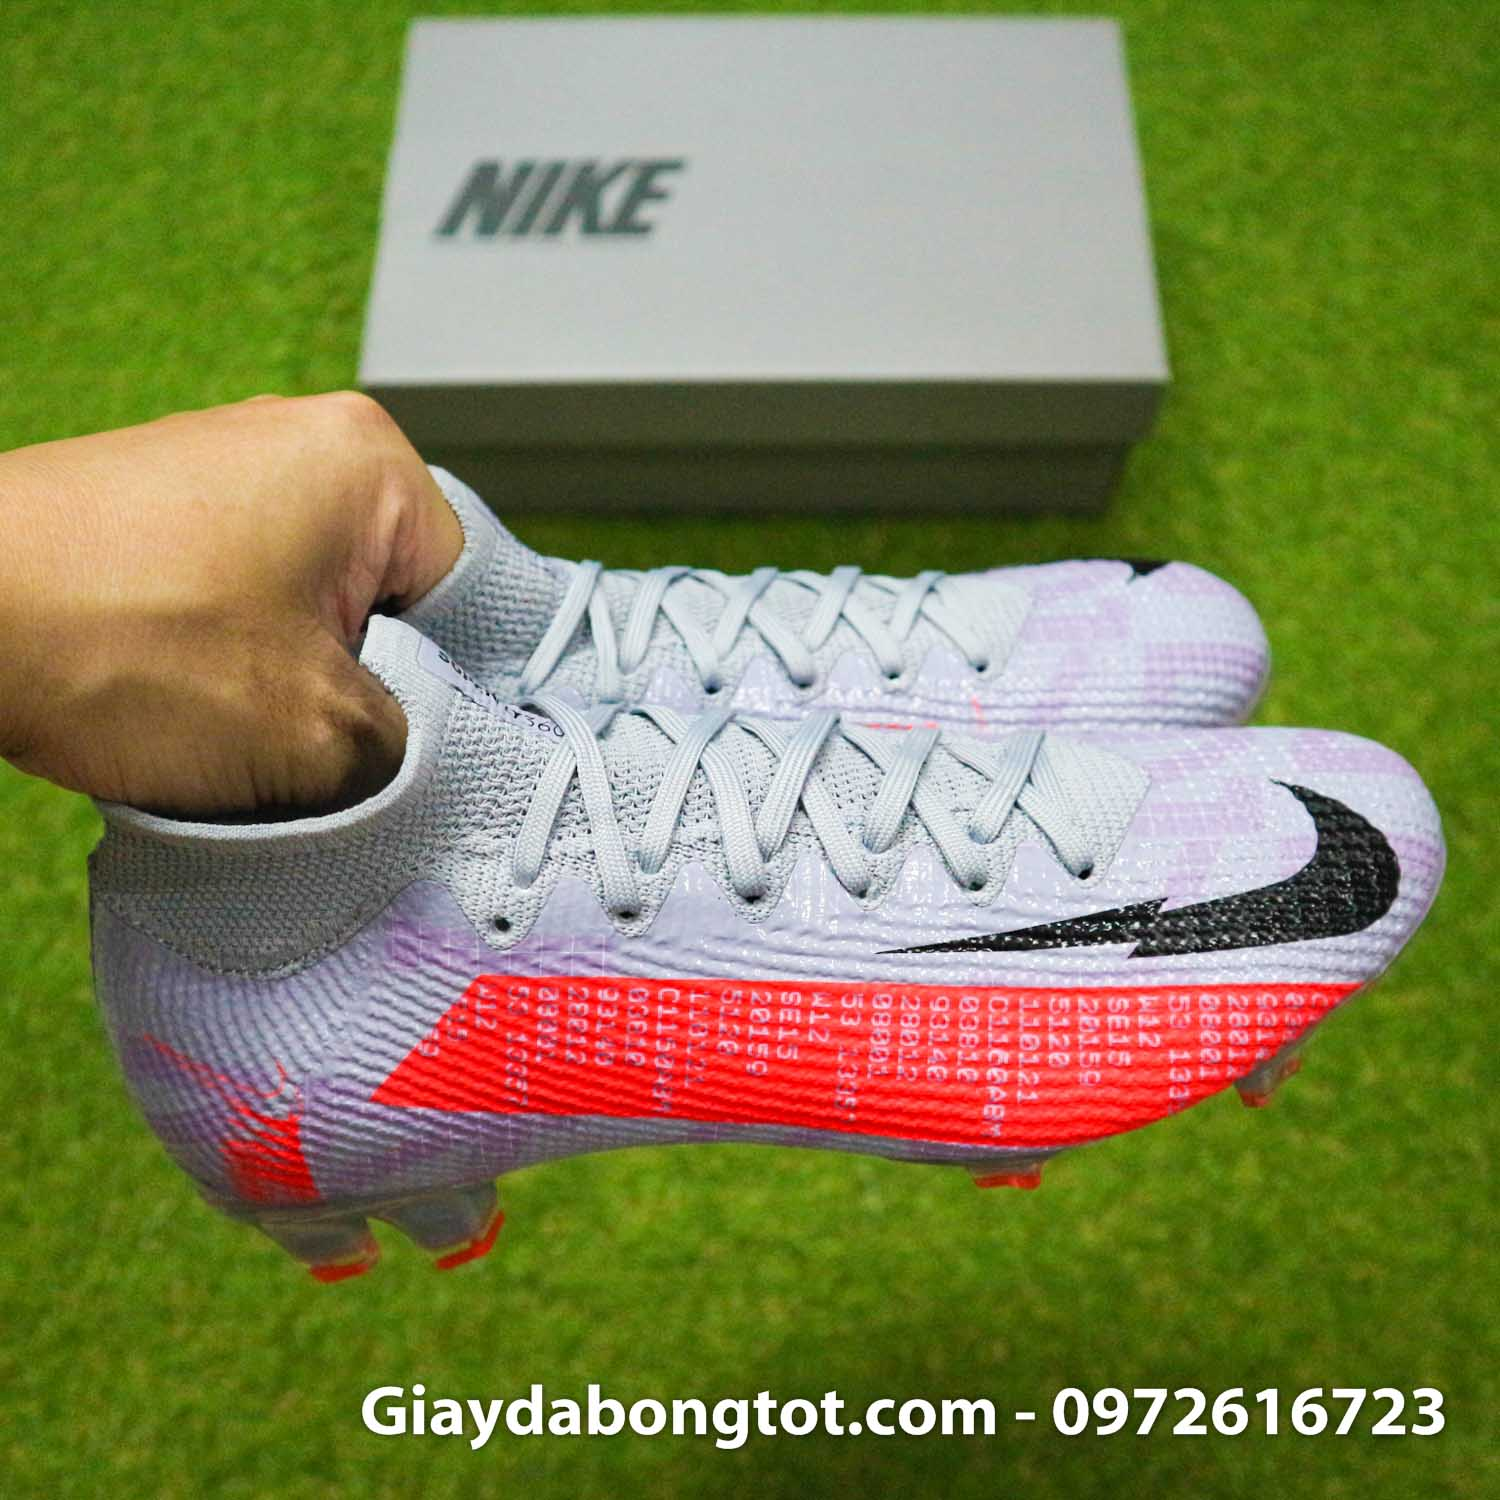 nike mercurial superfly 7 elite fg xam do vach den euro 2020 (11)